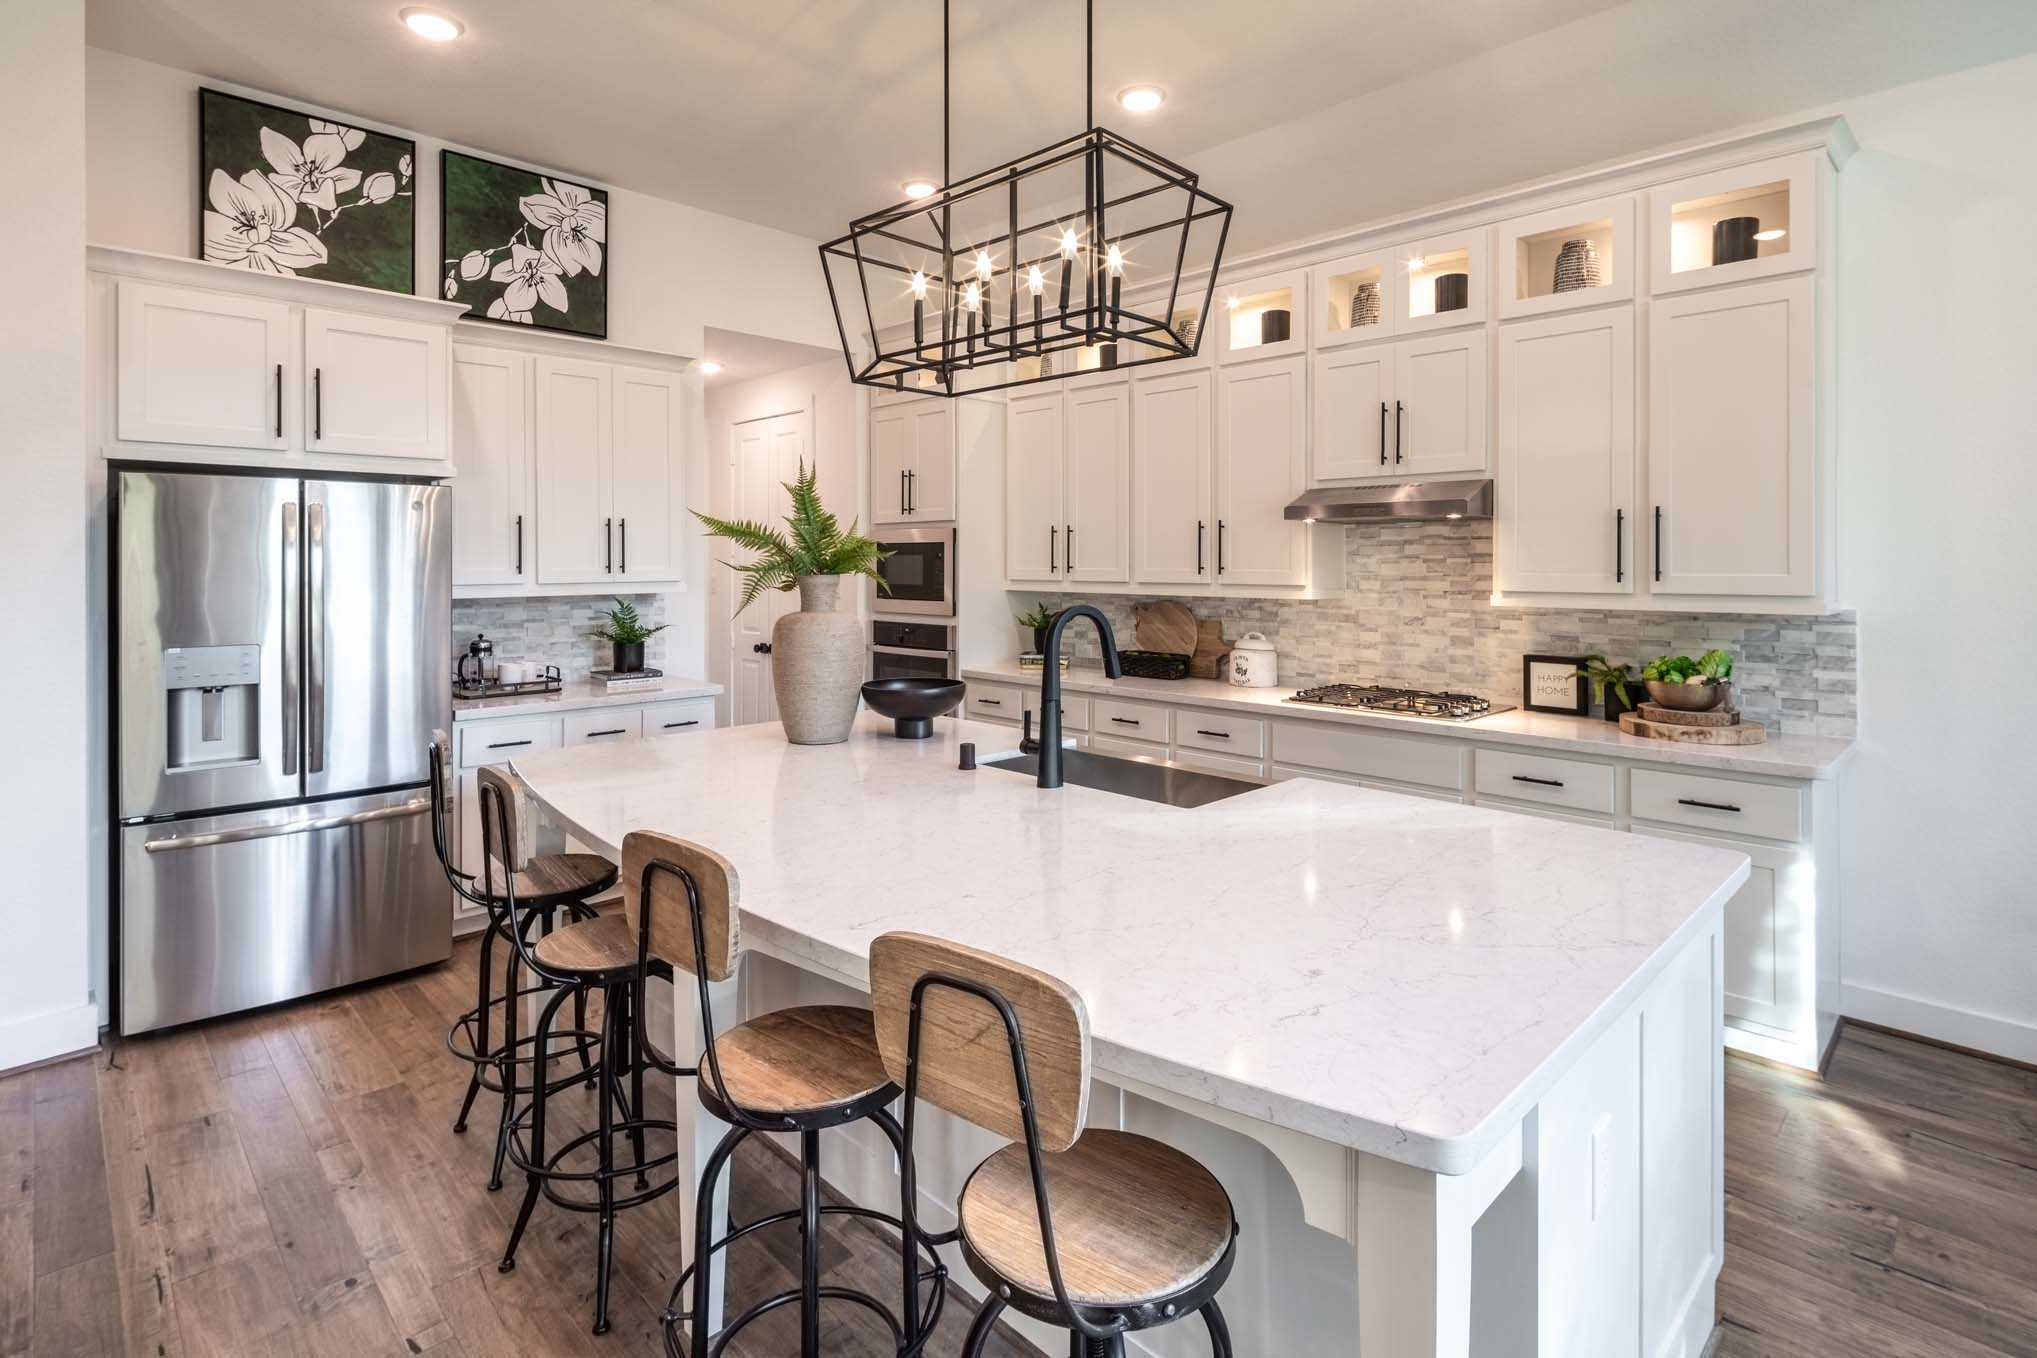 Kitchen featured in the Plan Canterbury By Highland Homes in Dallas, TX